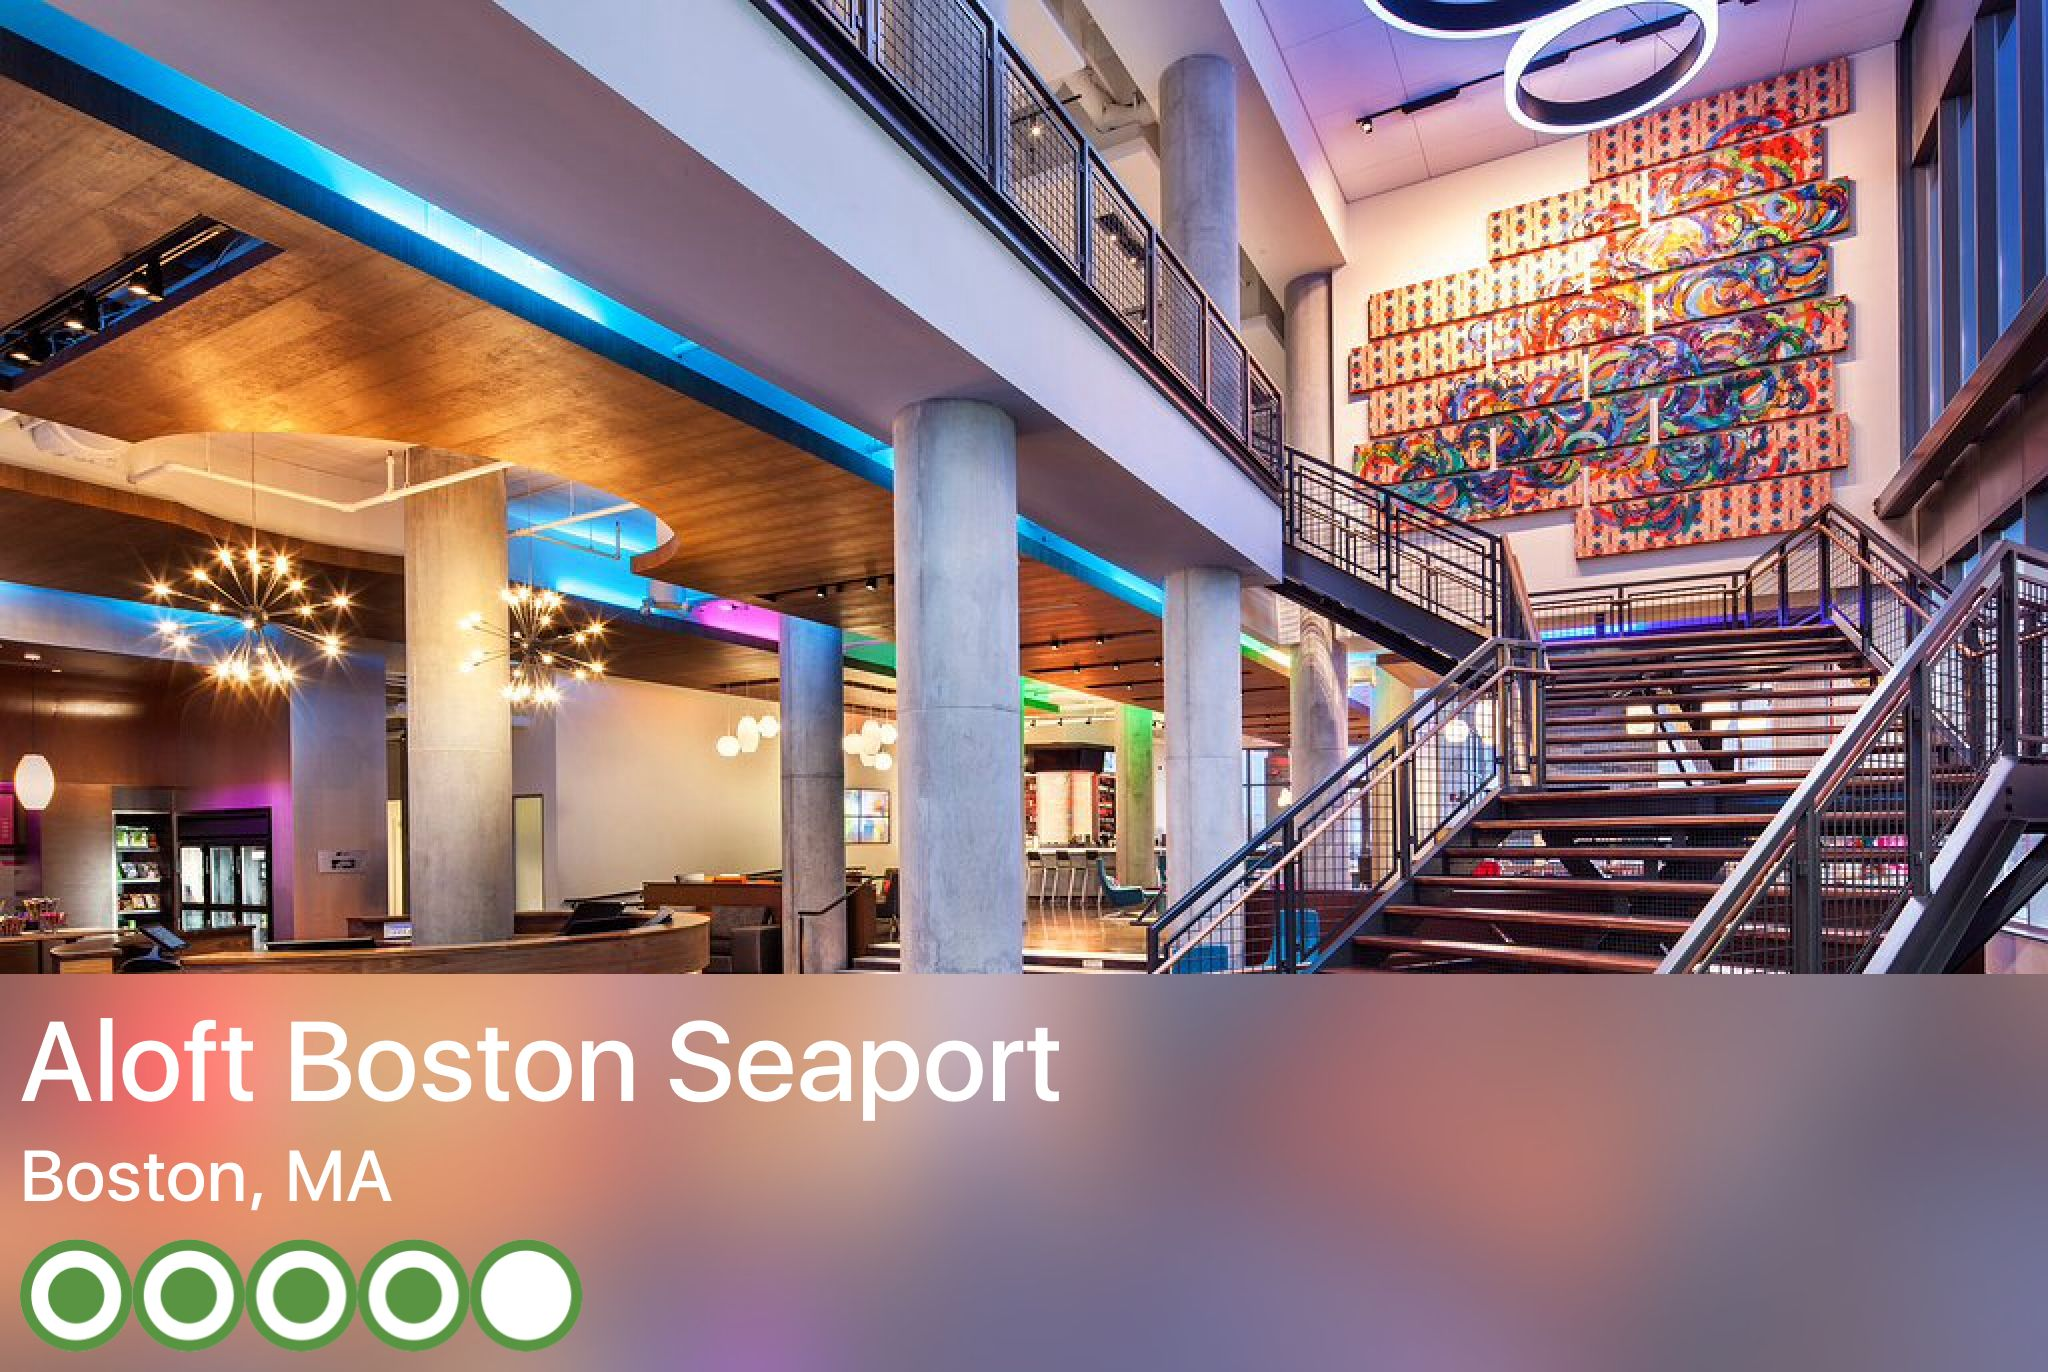 Enjoy Our One Of A Kind Boston Hotel With Gorgeous Views And Close Proximity To Delicious Cuisine Aloft Seaport Has It All